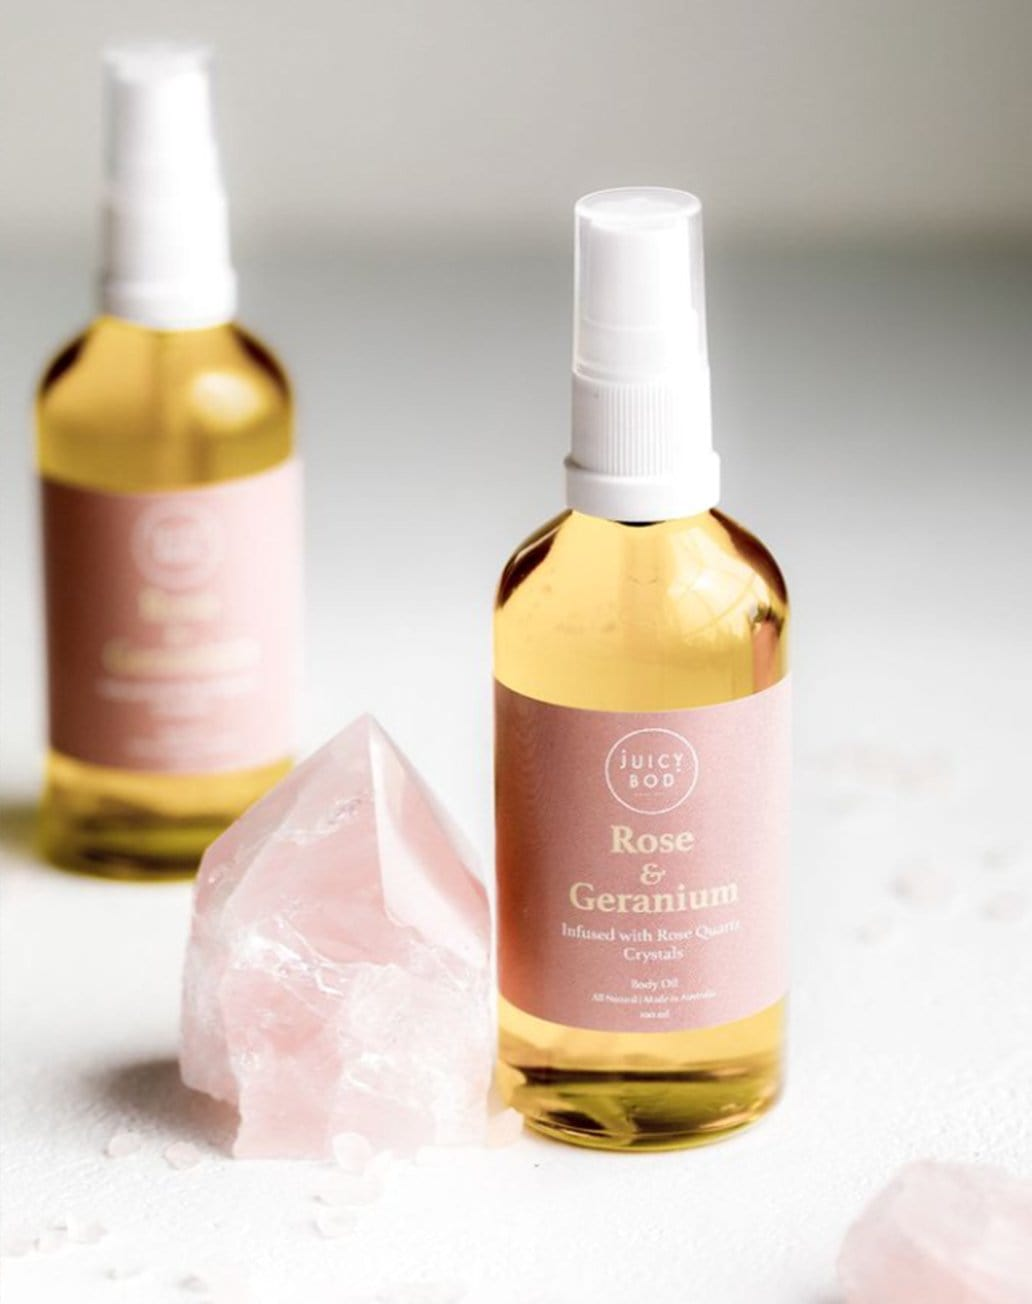 Rose & Geranium Body Oil with Rose Quartz